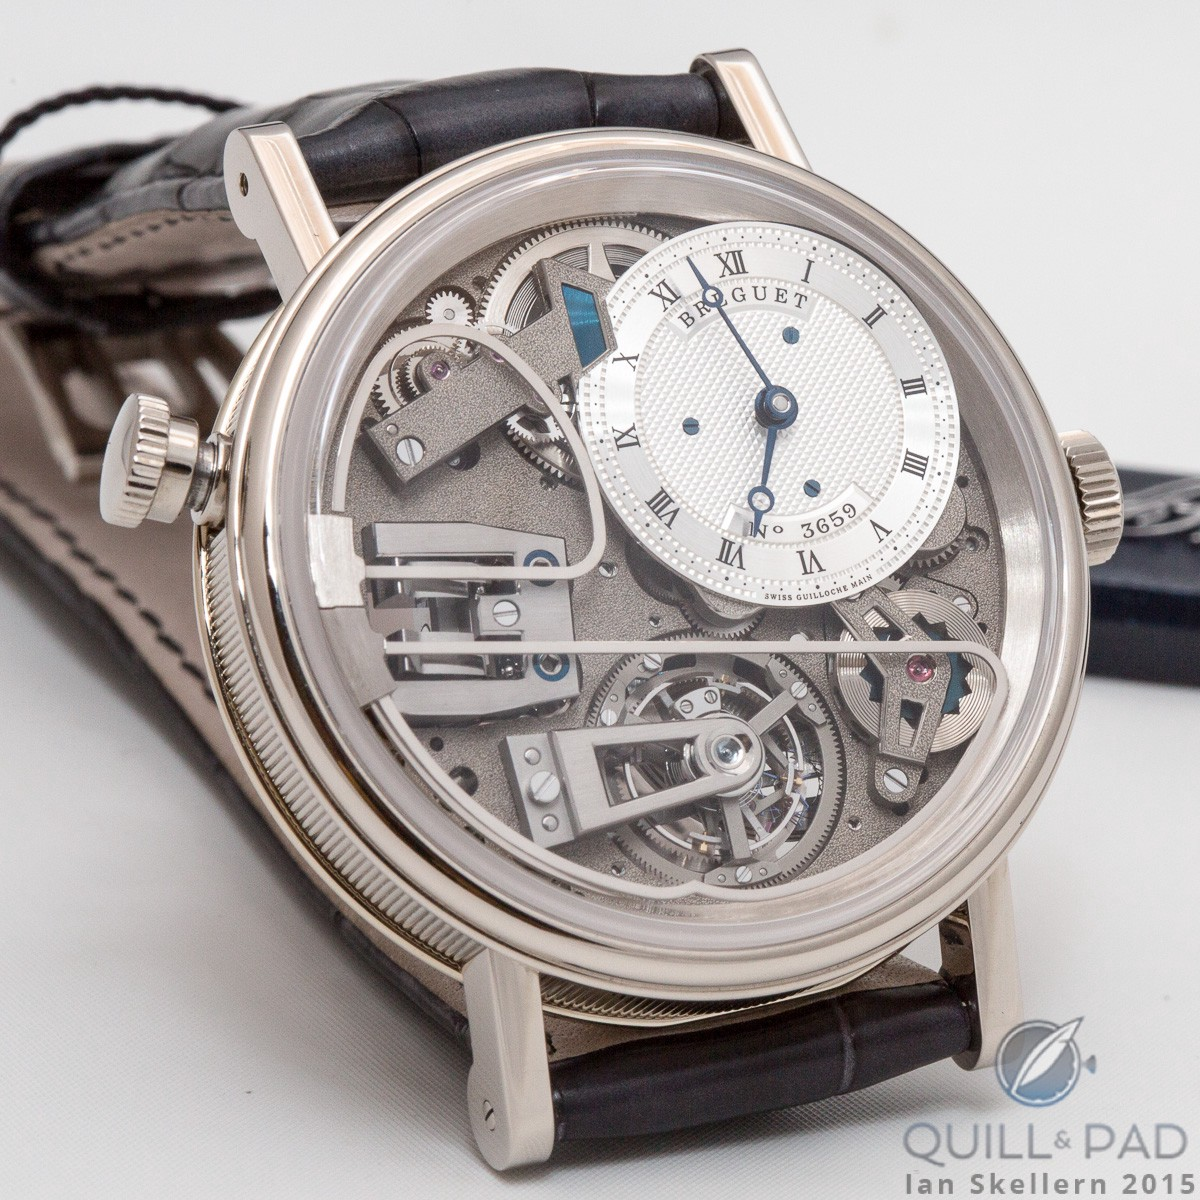 Breguet Reference 7087 Tradition Répétition Minutes Tourbillon: those unusually curved bars dial side are the repeater gongs